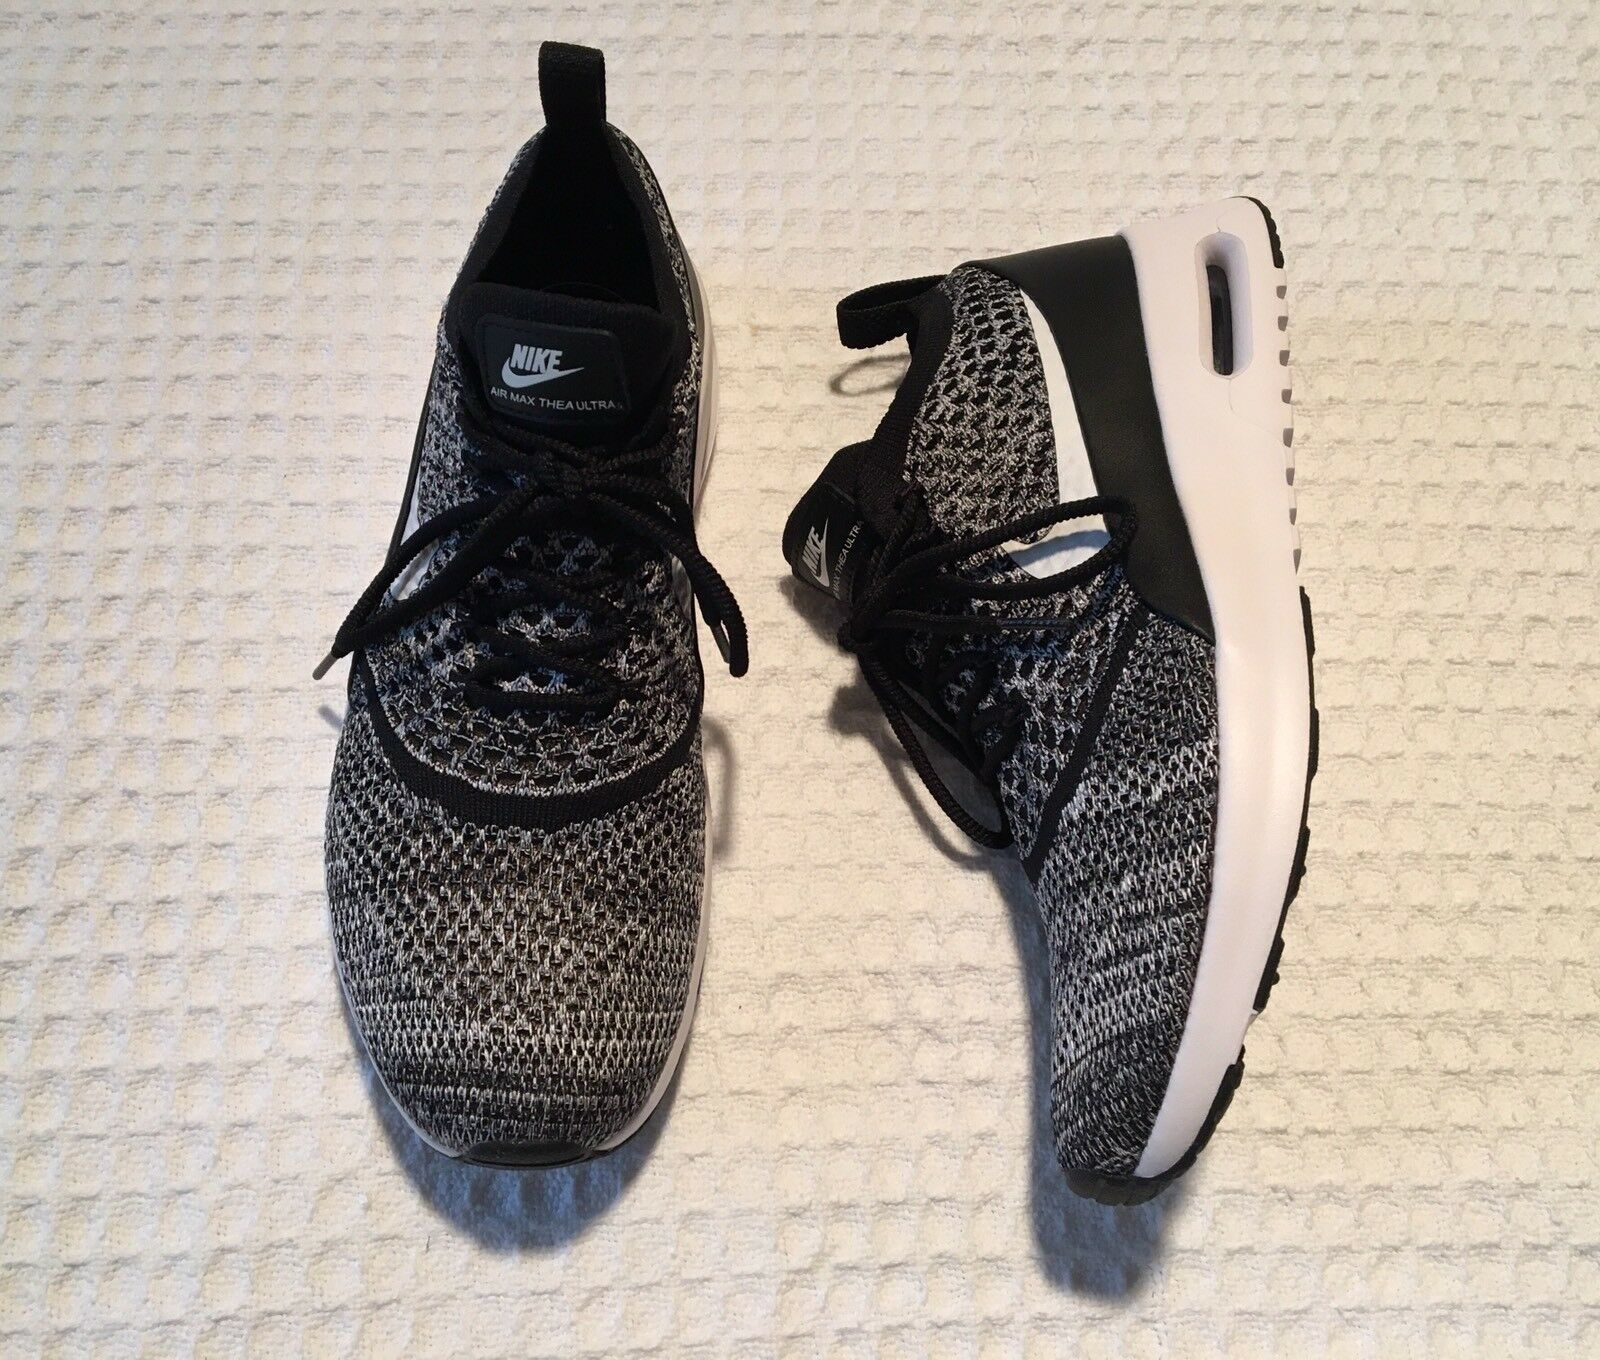 brand new 18379 4ce40 new NIKE Air Air Air Max Thea Ultra FK Sneakers Running Shoes  150 Black  White 10 219219